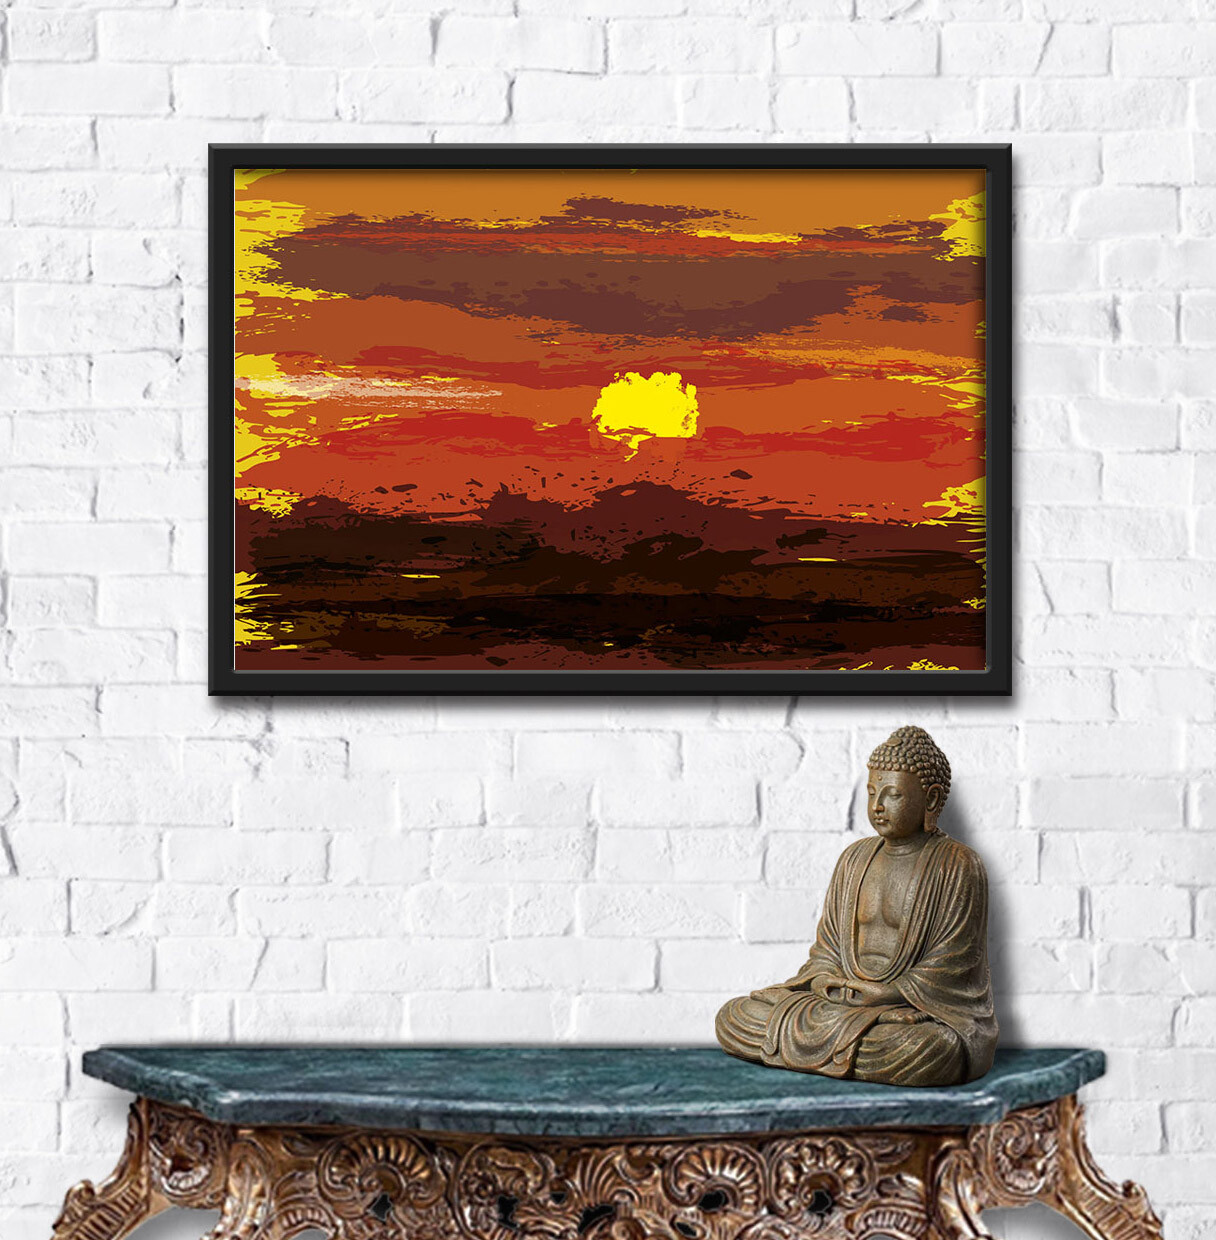 Rajesh r sawant sunrise abst white wall with antique table